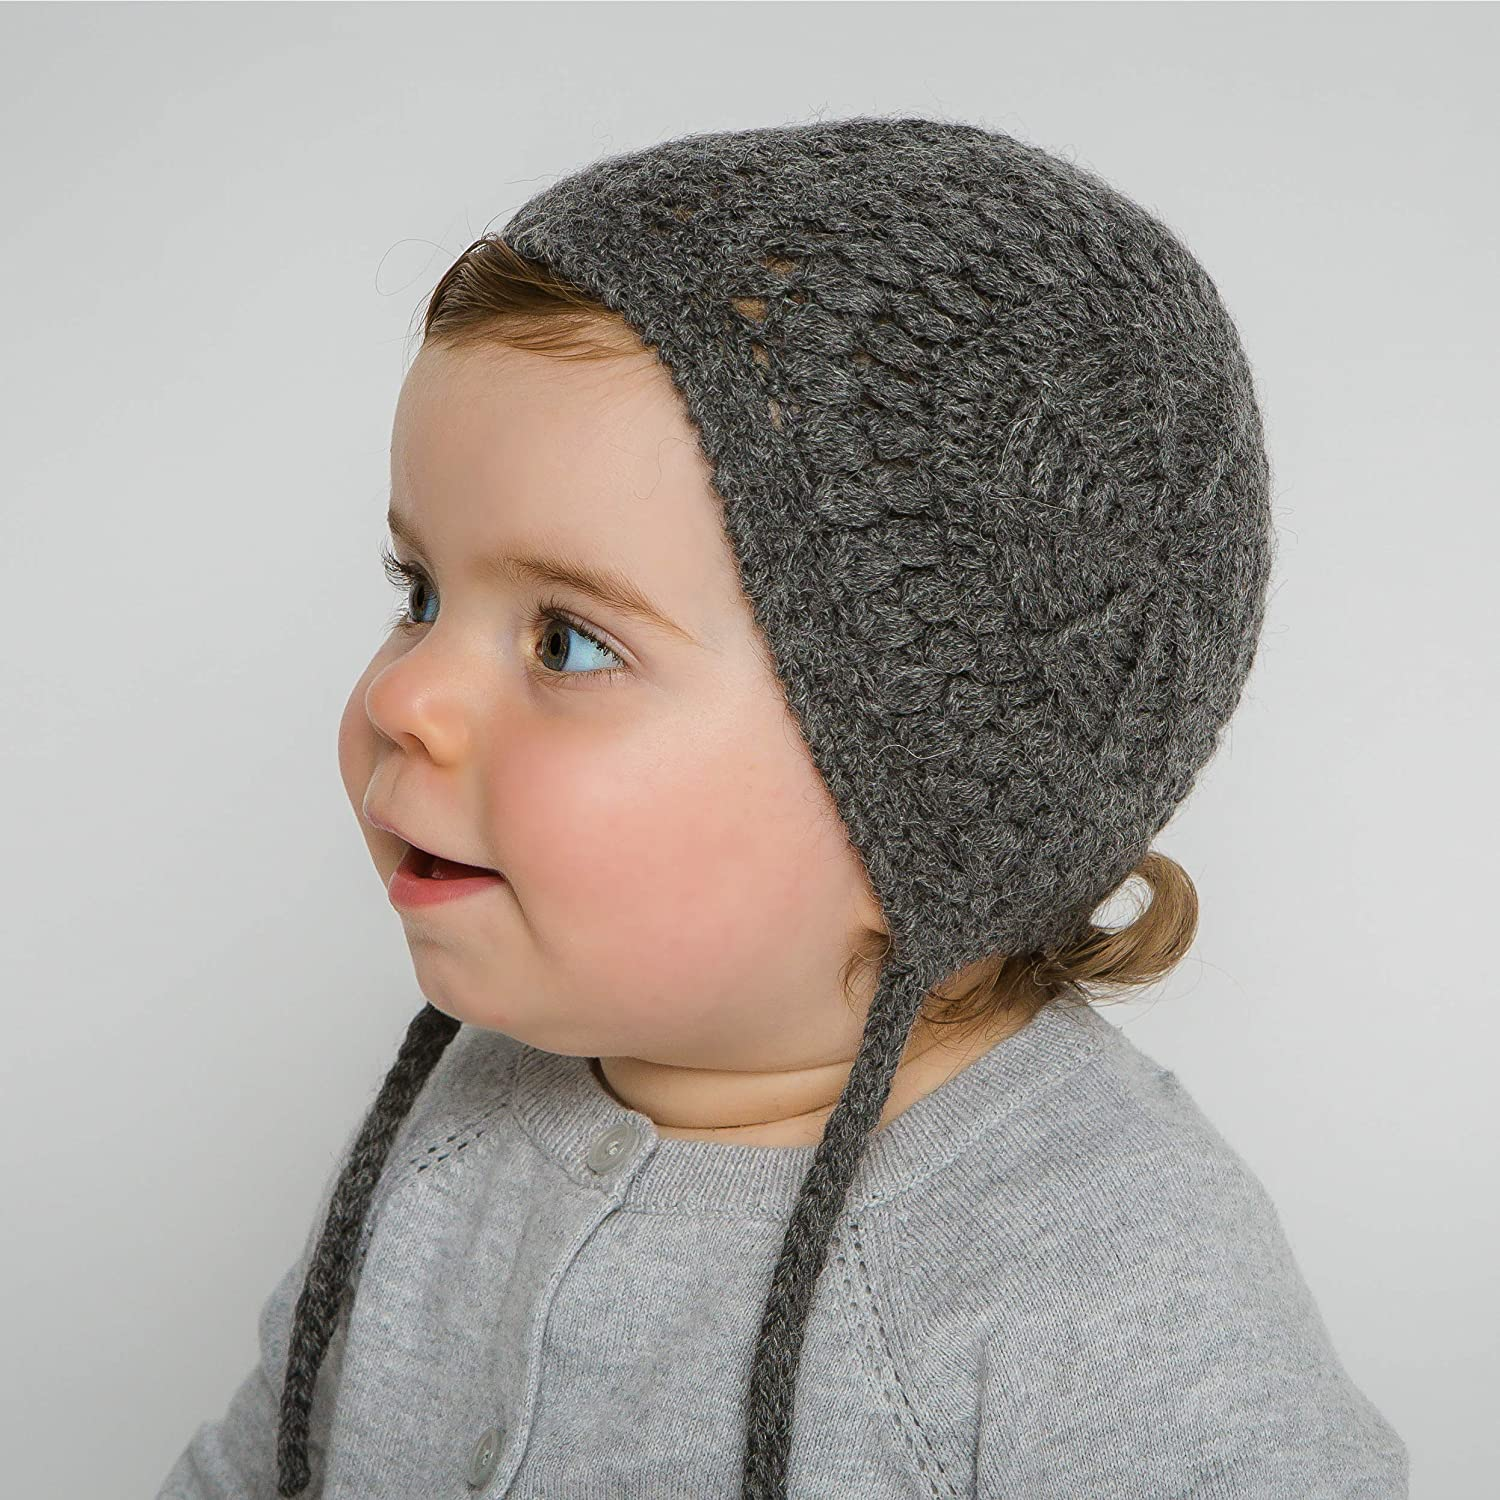 Hand-Knit 100% Organic Alpaca Wool | Loreto Bonnet Hat (Charcoal Grey) by Surhilo | Soft, Quality, Hypoallergenic | The Perfect and Eco-Friendly Way to Keep Your Baby and Toddler Cozy and Comfortable